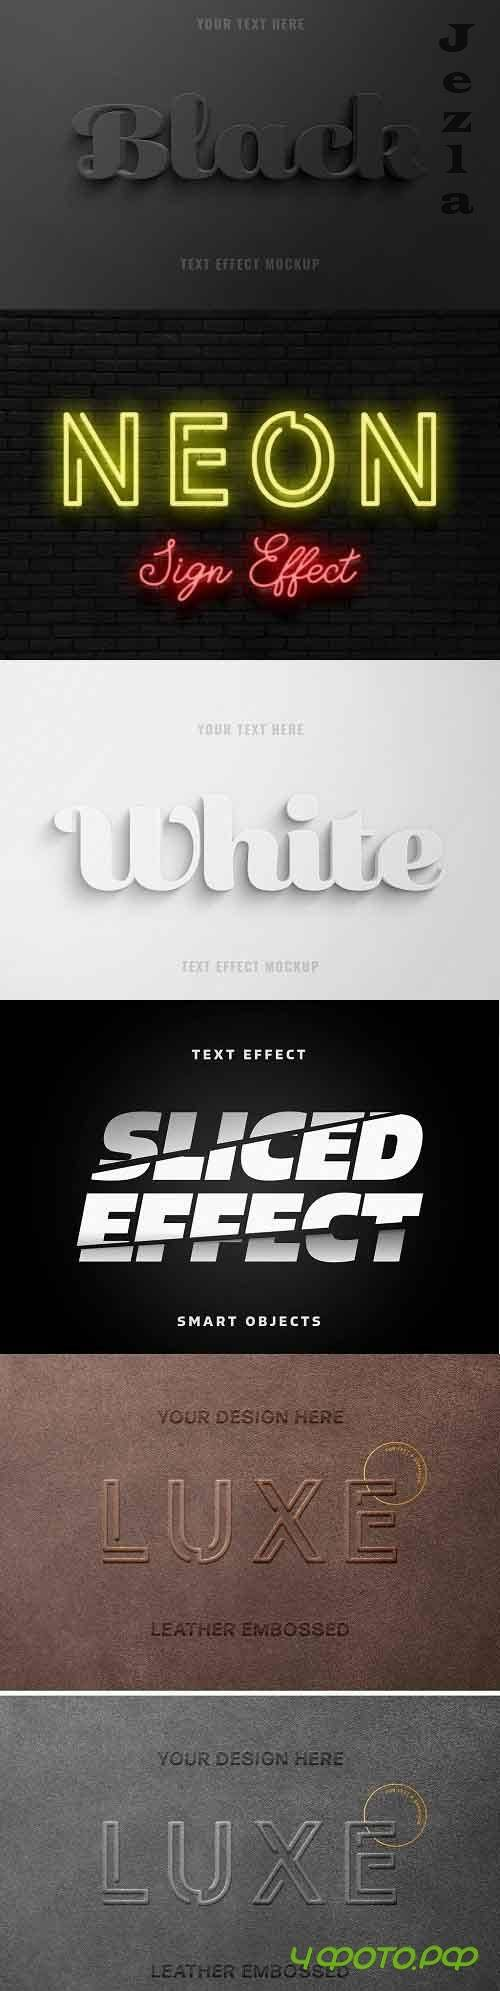 Text Effect Mockup